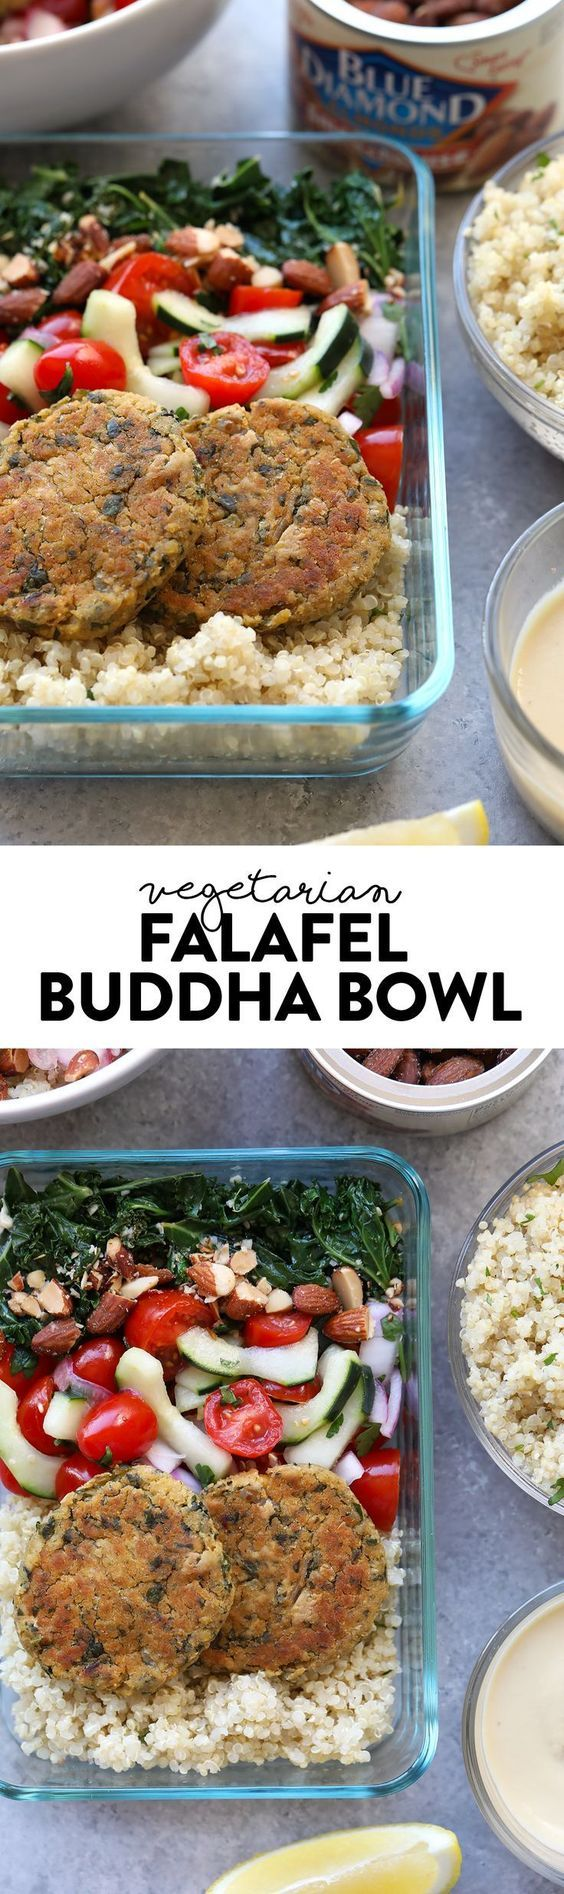 Get your meal prep game on with these delicious Vegetarian Falafel Buddha Bowls -- made in partnership with Blue Diamond Almonds. #ad They are packed with fiber, protein, greens, and crunch (thank you Blue Diamond Almonds!).